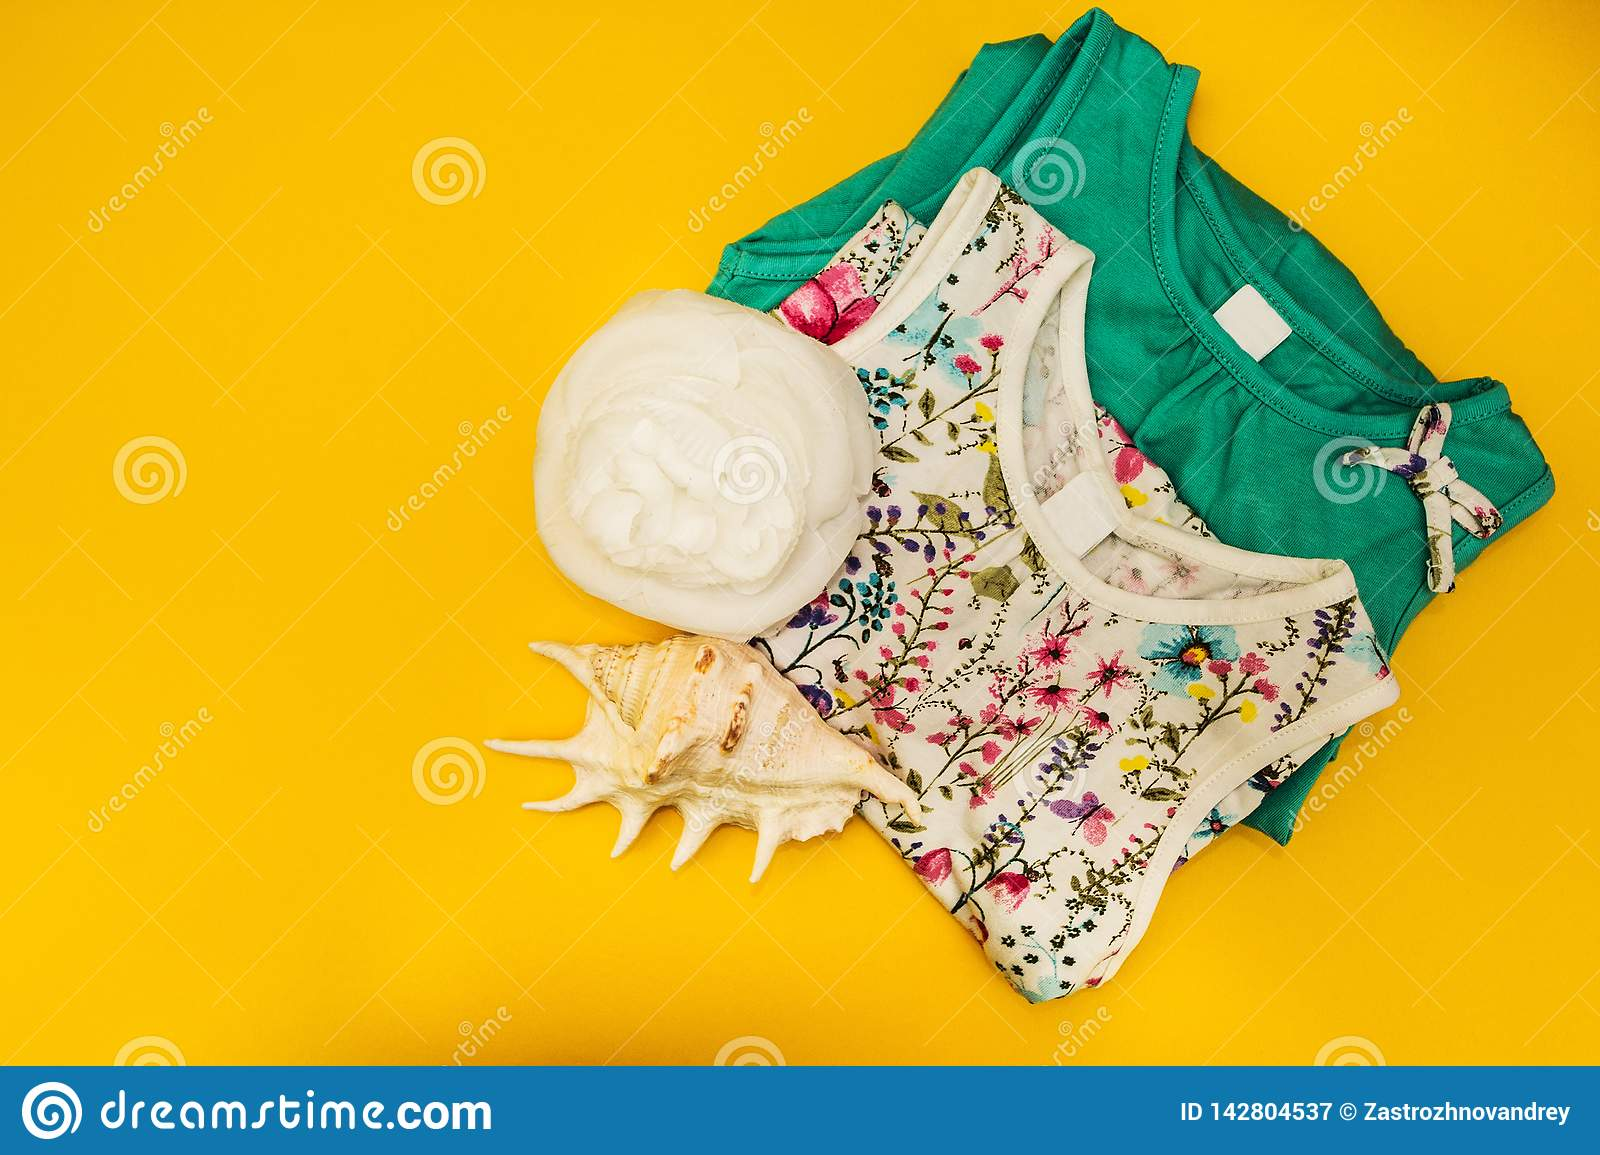 Two dresses, white flower and a large shell on a yellow background, isolated